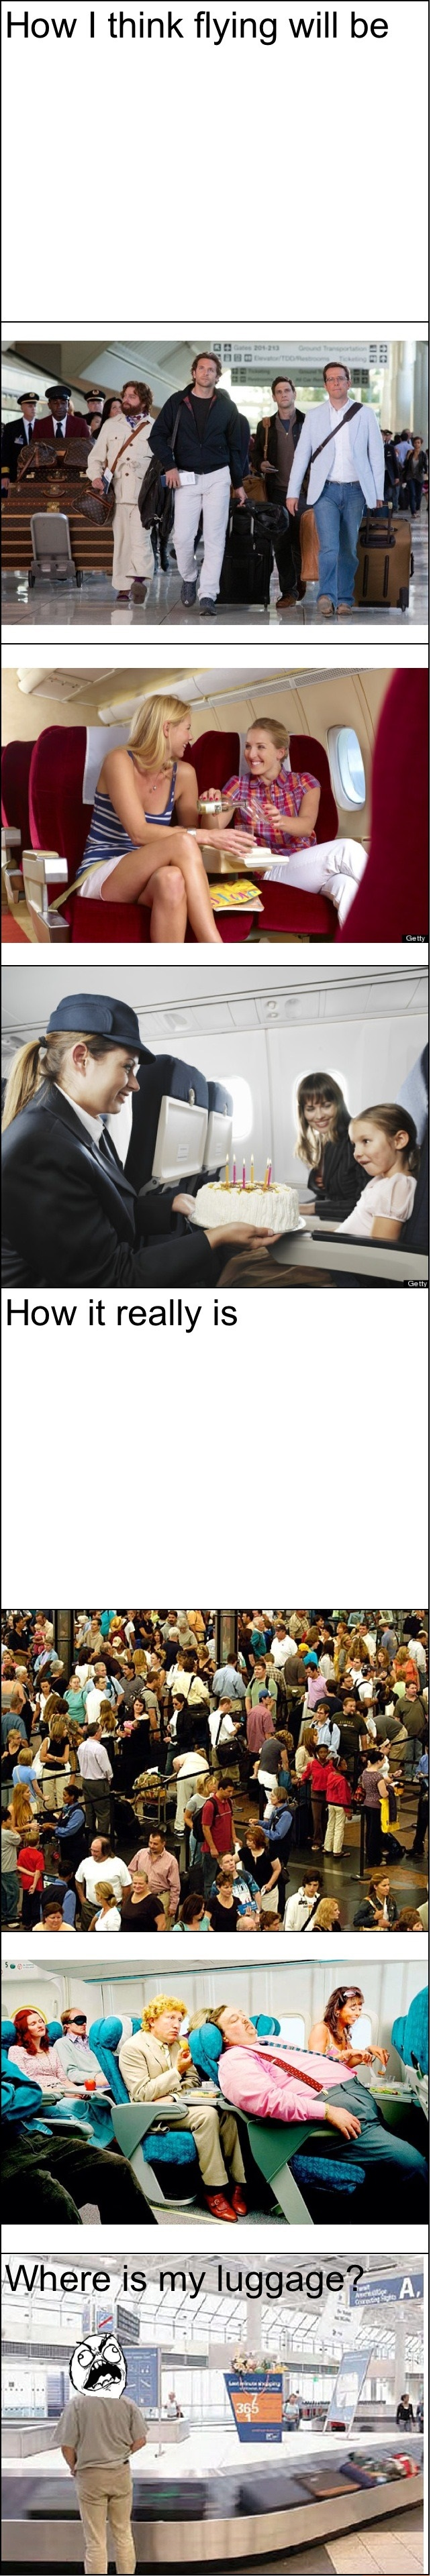 funny-picture-flight-expectation-reality